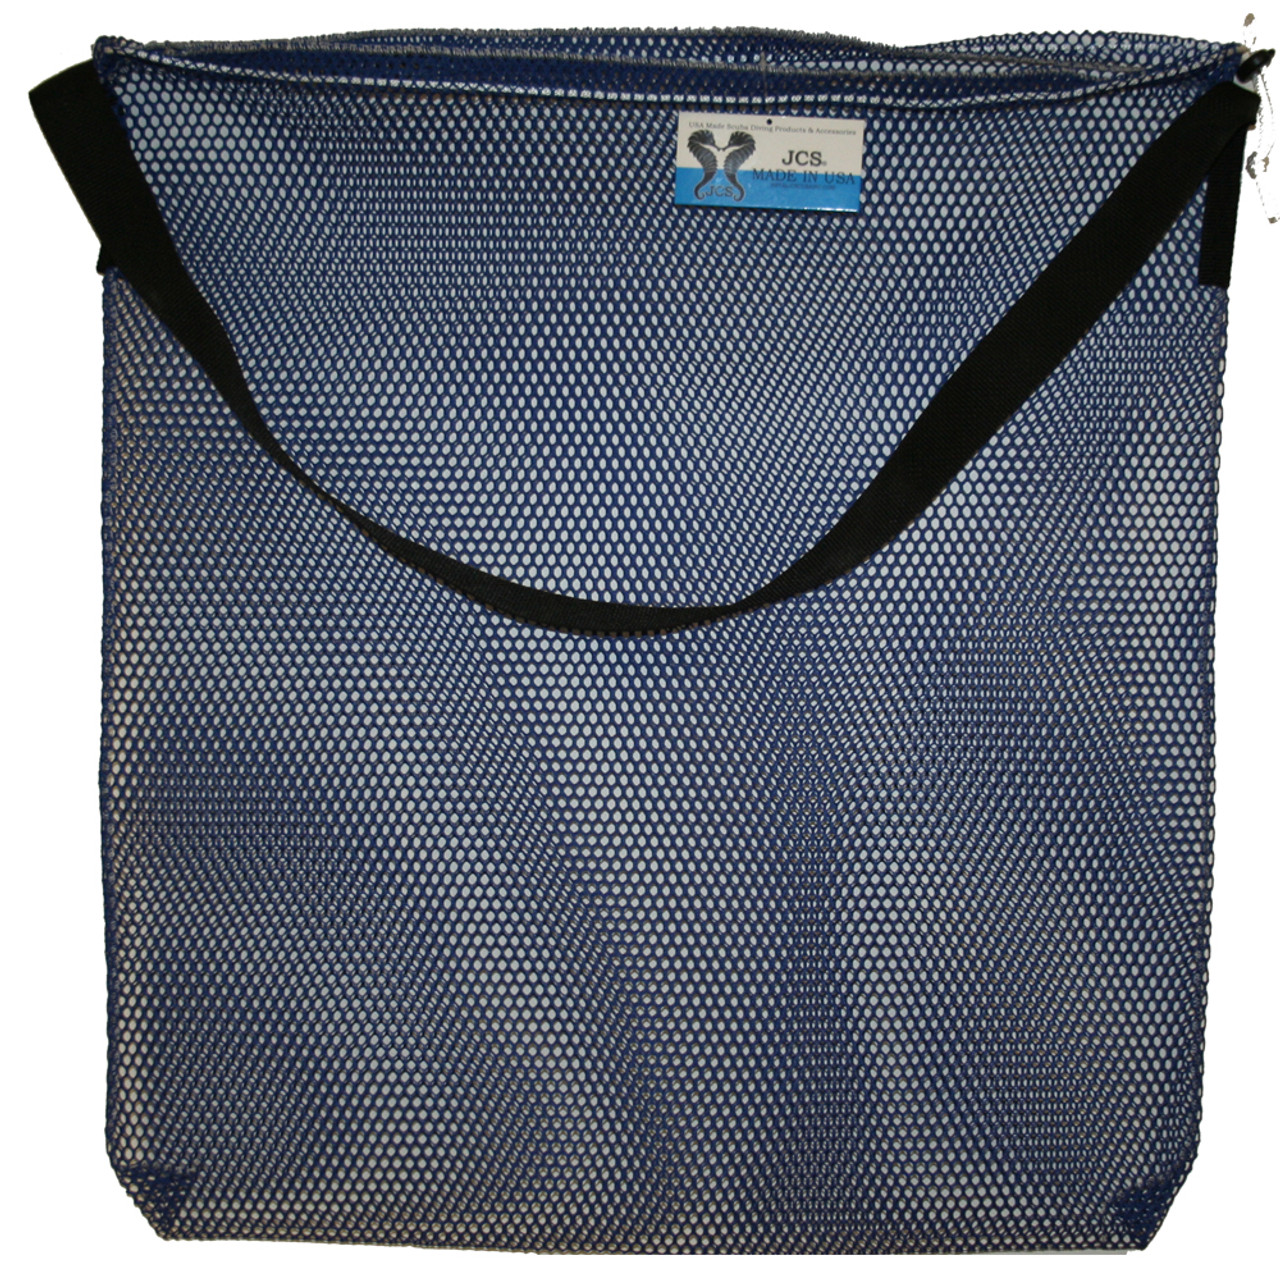 Mesh Drawstring Tote Bag with Shoulder Strap, Large, Approx. 24inch x 30inch